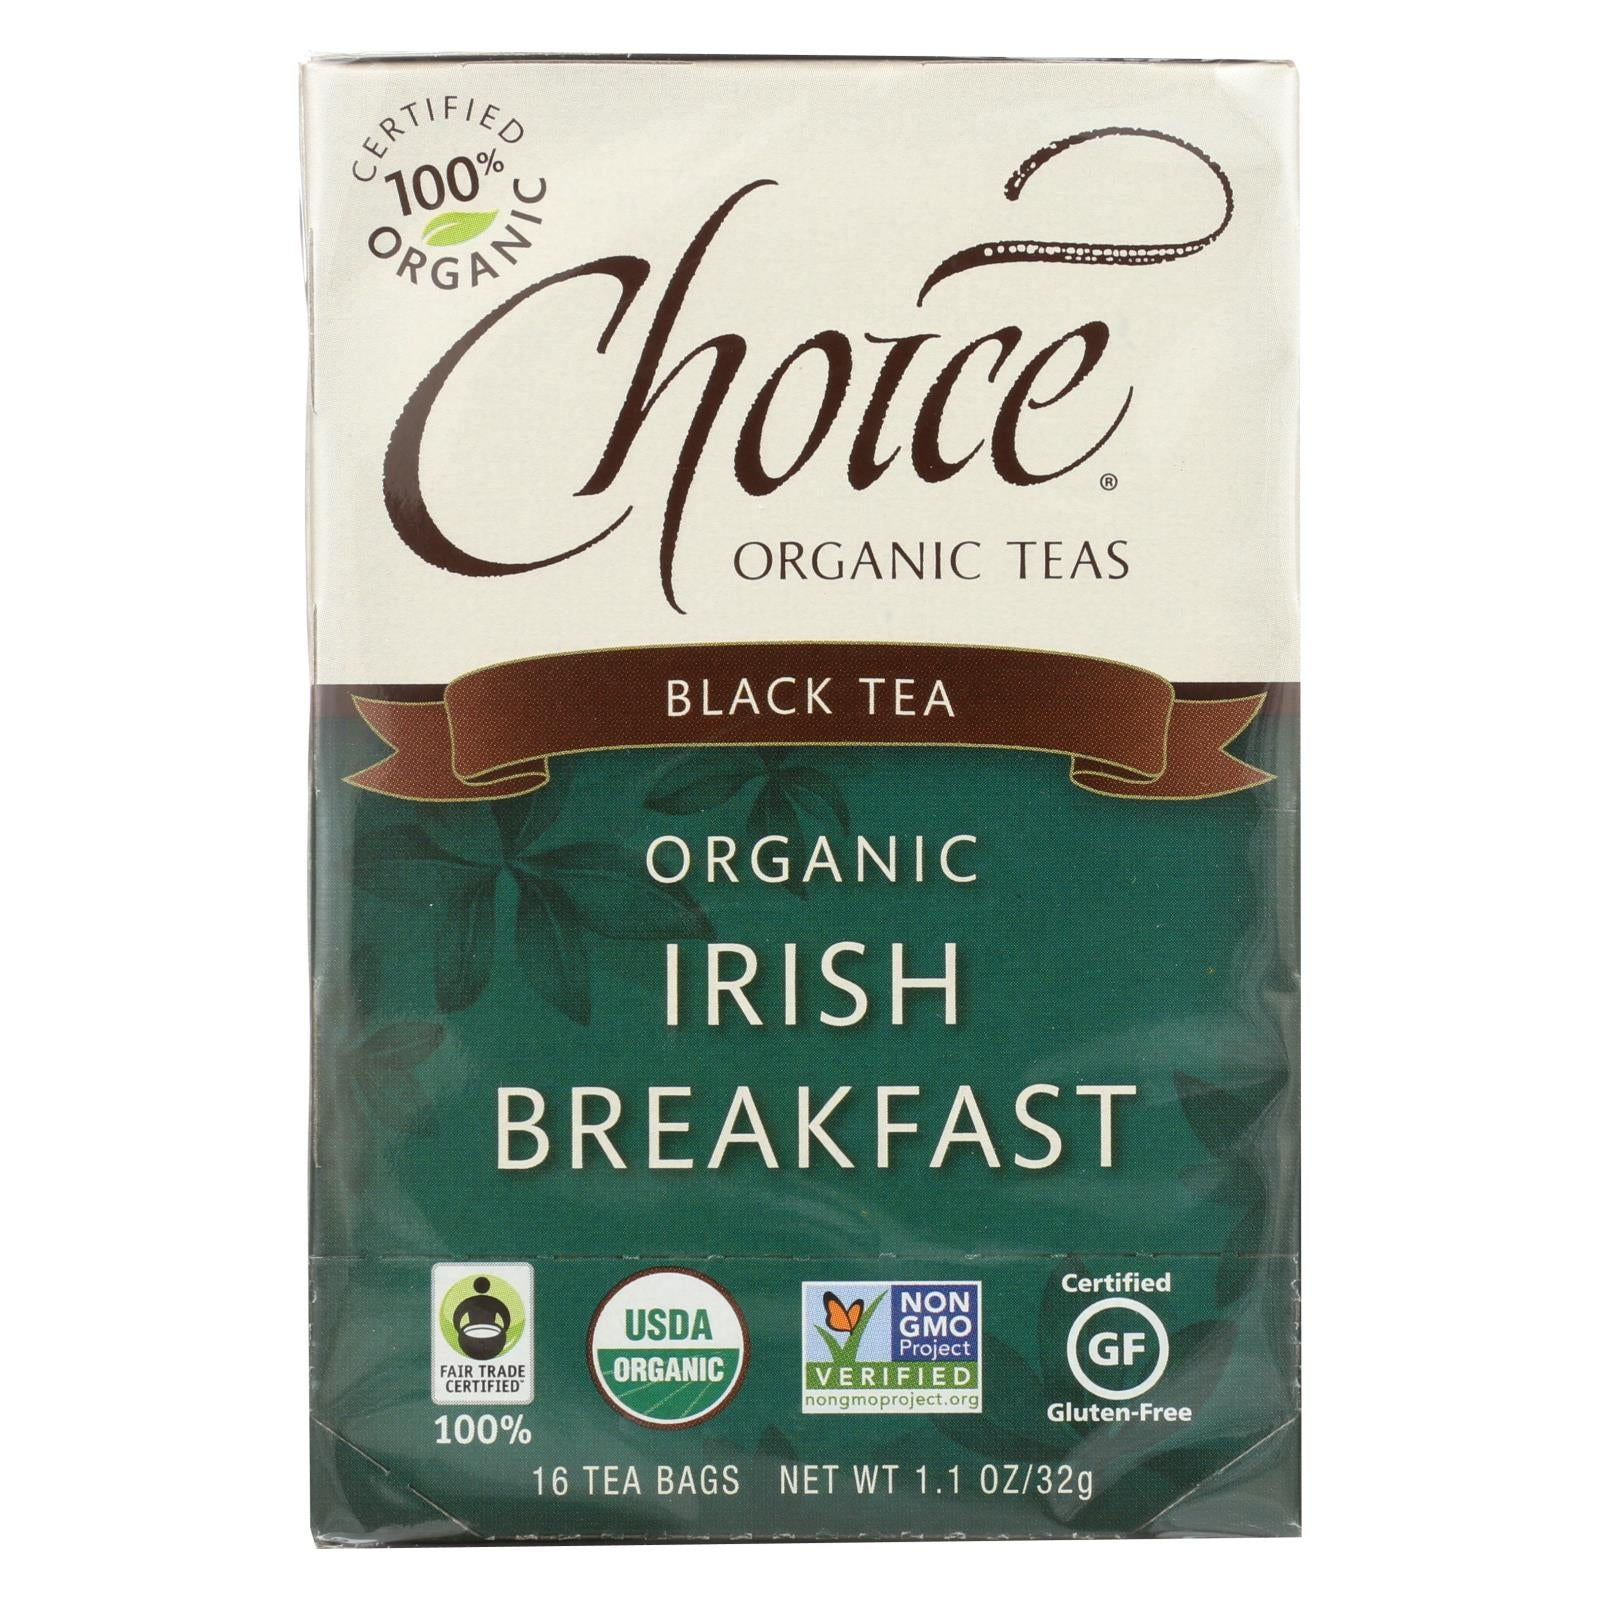 Buy Choice Organic Teas Irish Breakfast Tea - 16 Tea Bags - Case of 6 - Black Tea from Veroeco.com